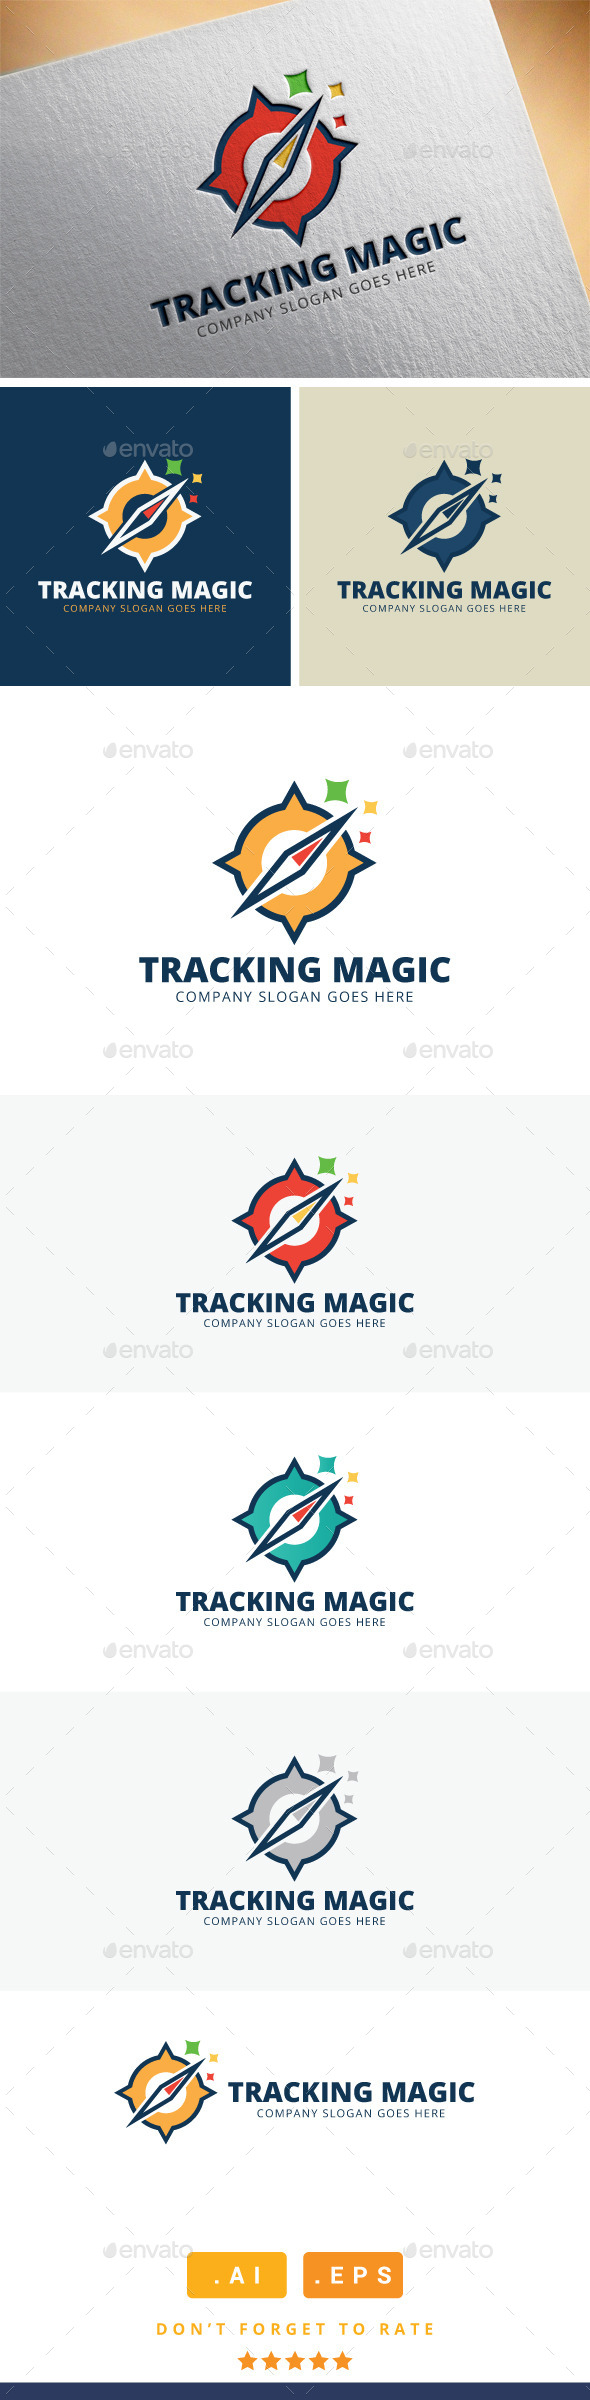 GraphicRiver Tracking Magic Logo 11409577